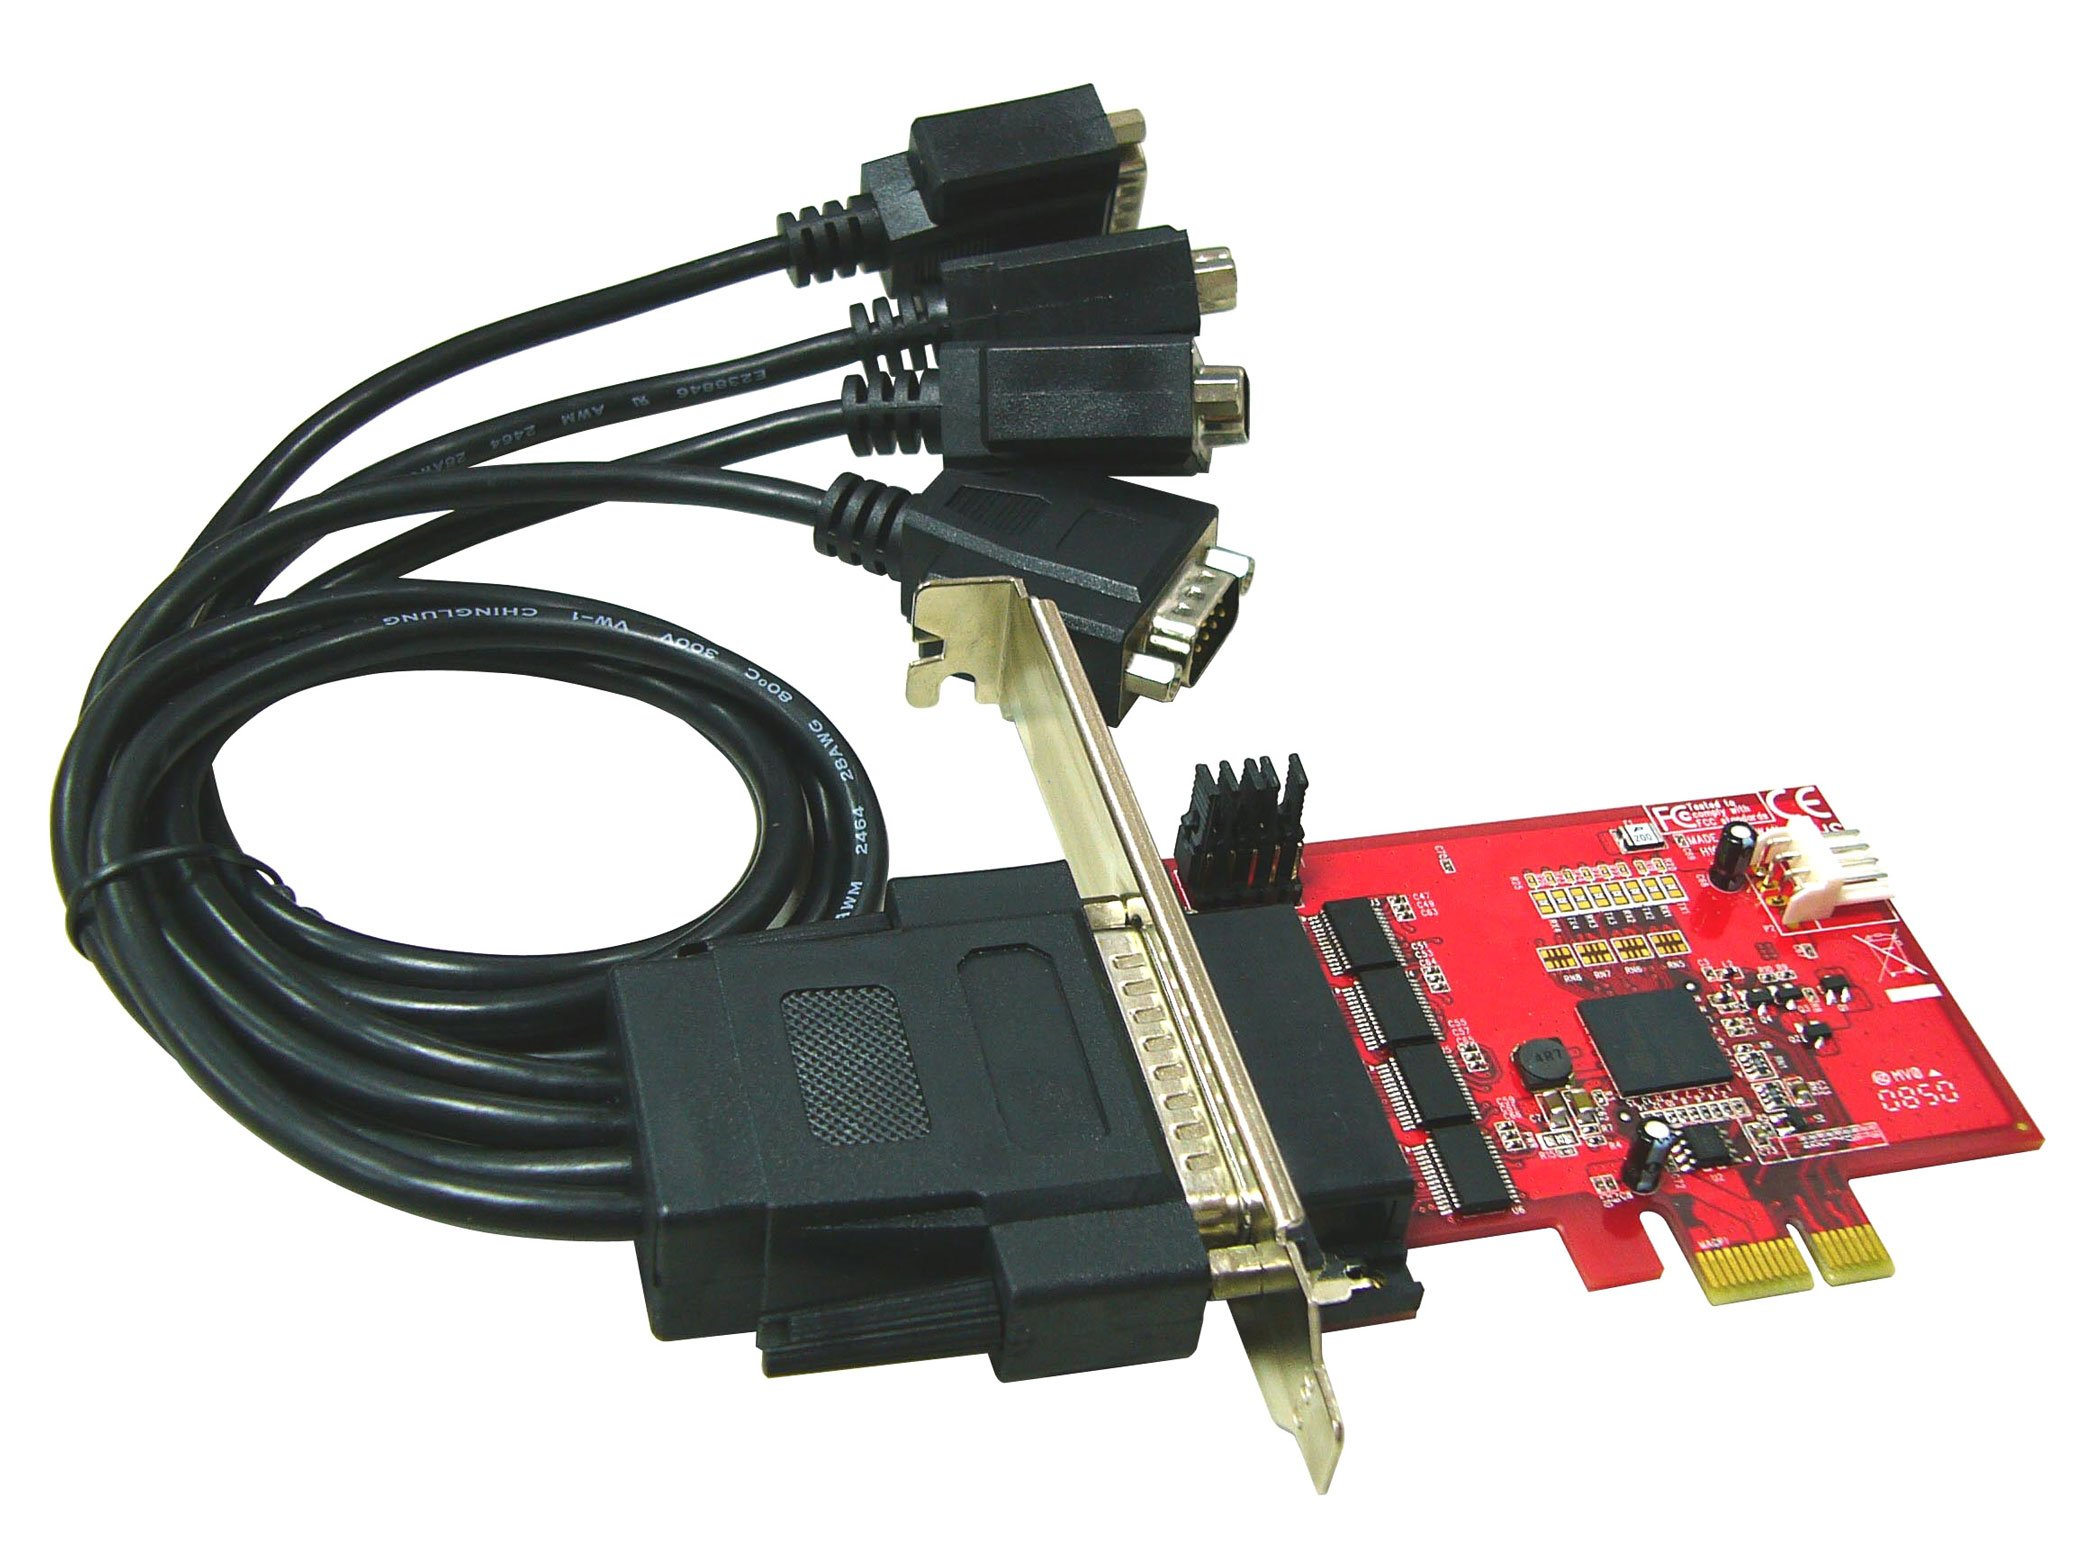 Ableconn PEX4S-954 4 Port RS232 PCI Express Serial Adapter Card with Power Output and 16950 UART (OXPCIe954 Chipset) - Optional 5V Power Output on Pin9 of DB9